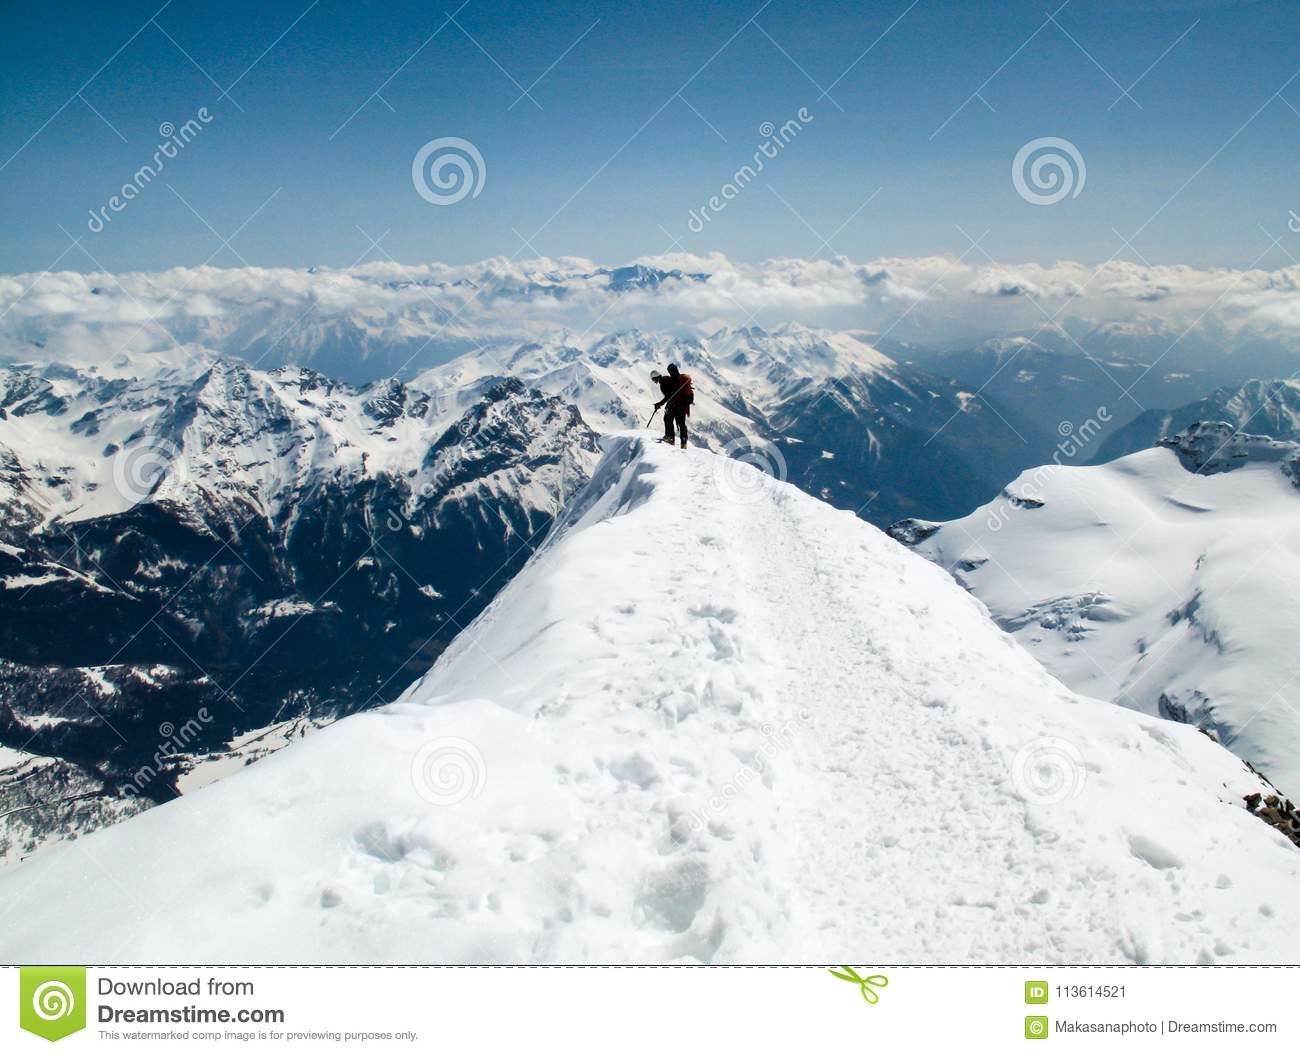 Two Mountain Climbers On A Narrow And Exposed Summit Ridge Lo Ng Over The Edge To See What Is Below